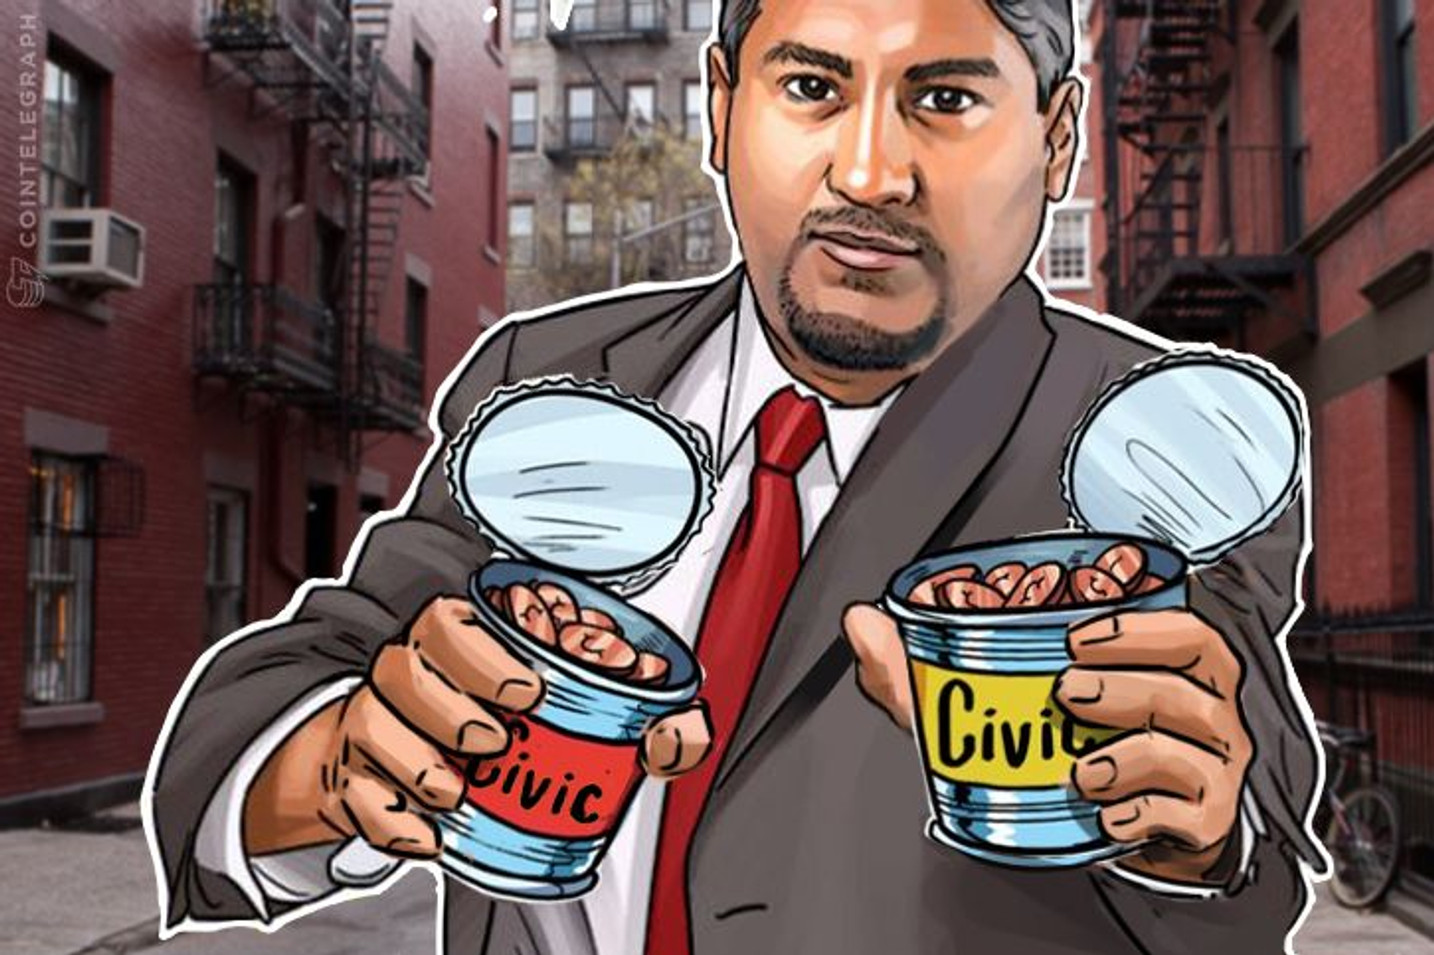 Lingham's Civic Jumps 22% on Credit.com Group Partnership News